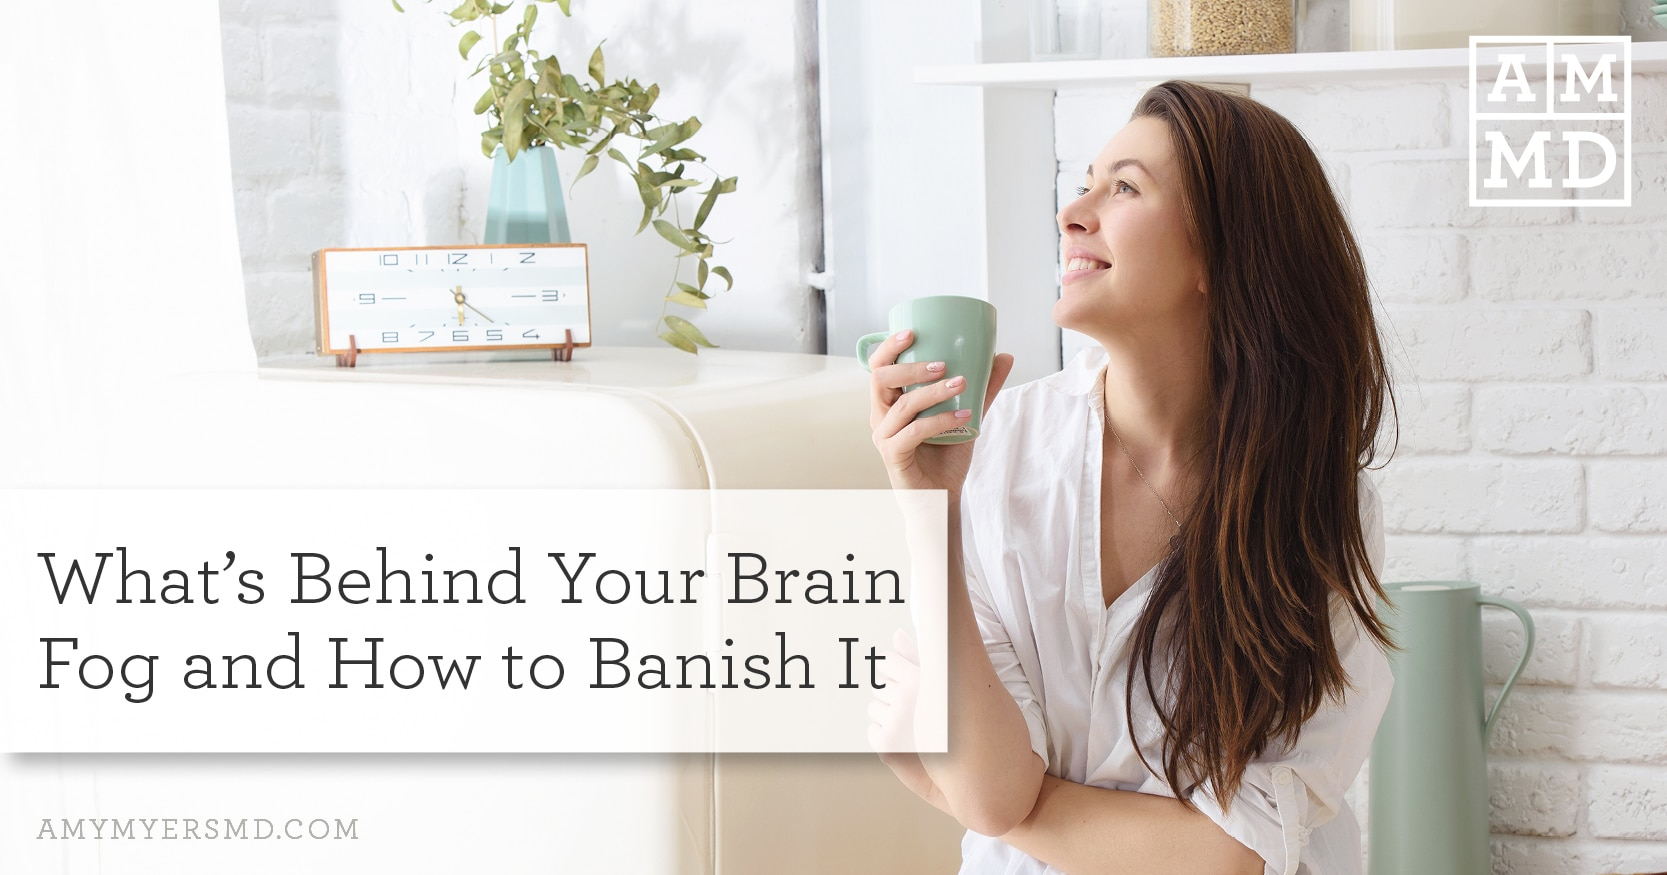 What's Behind Your Brain Fog and How to Banish It - Amy Myers MD